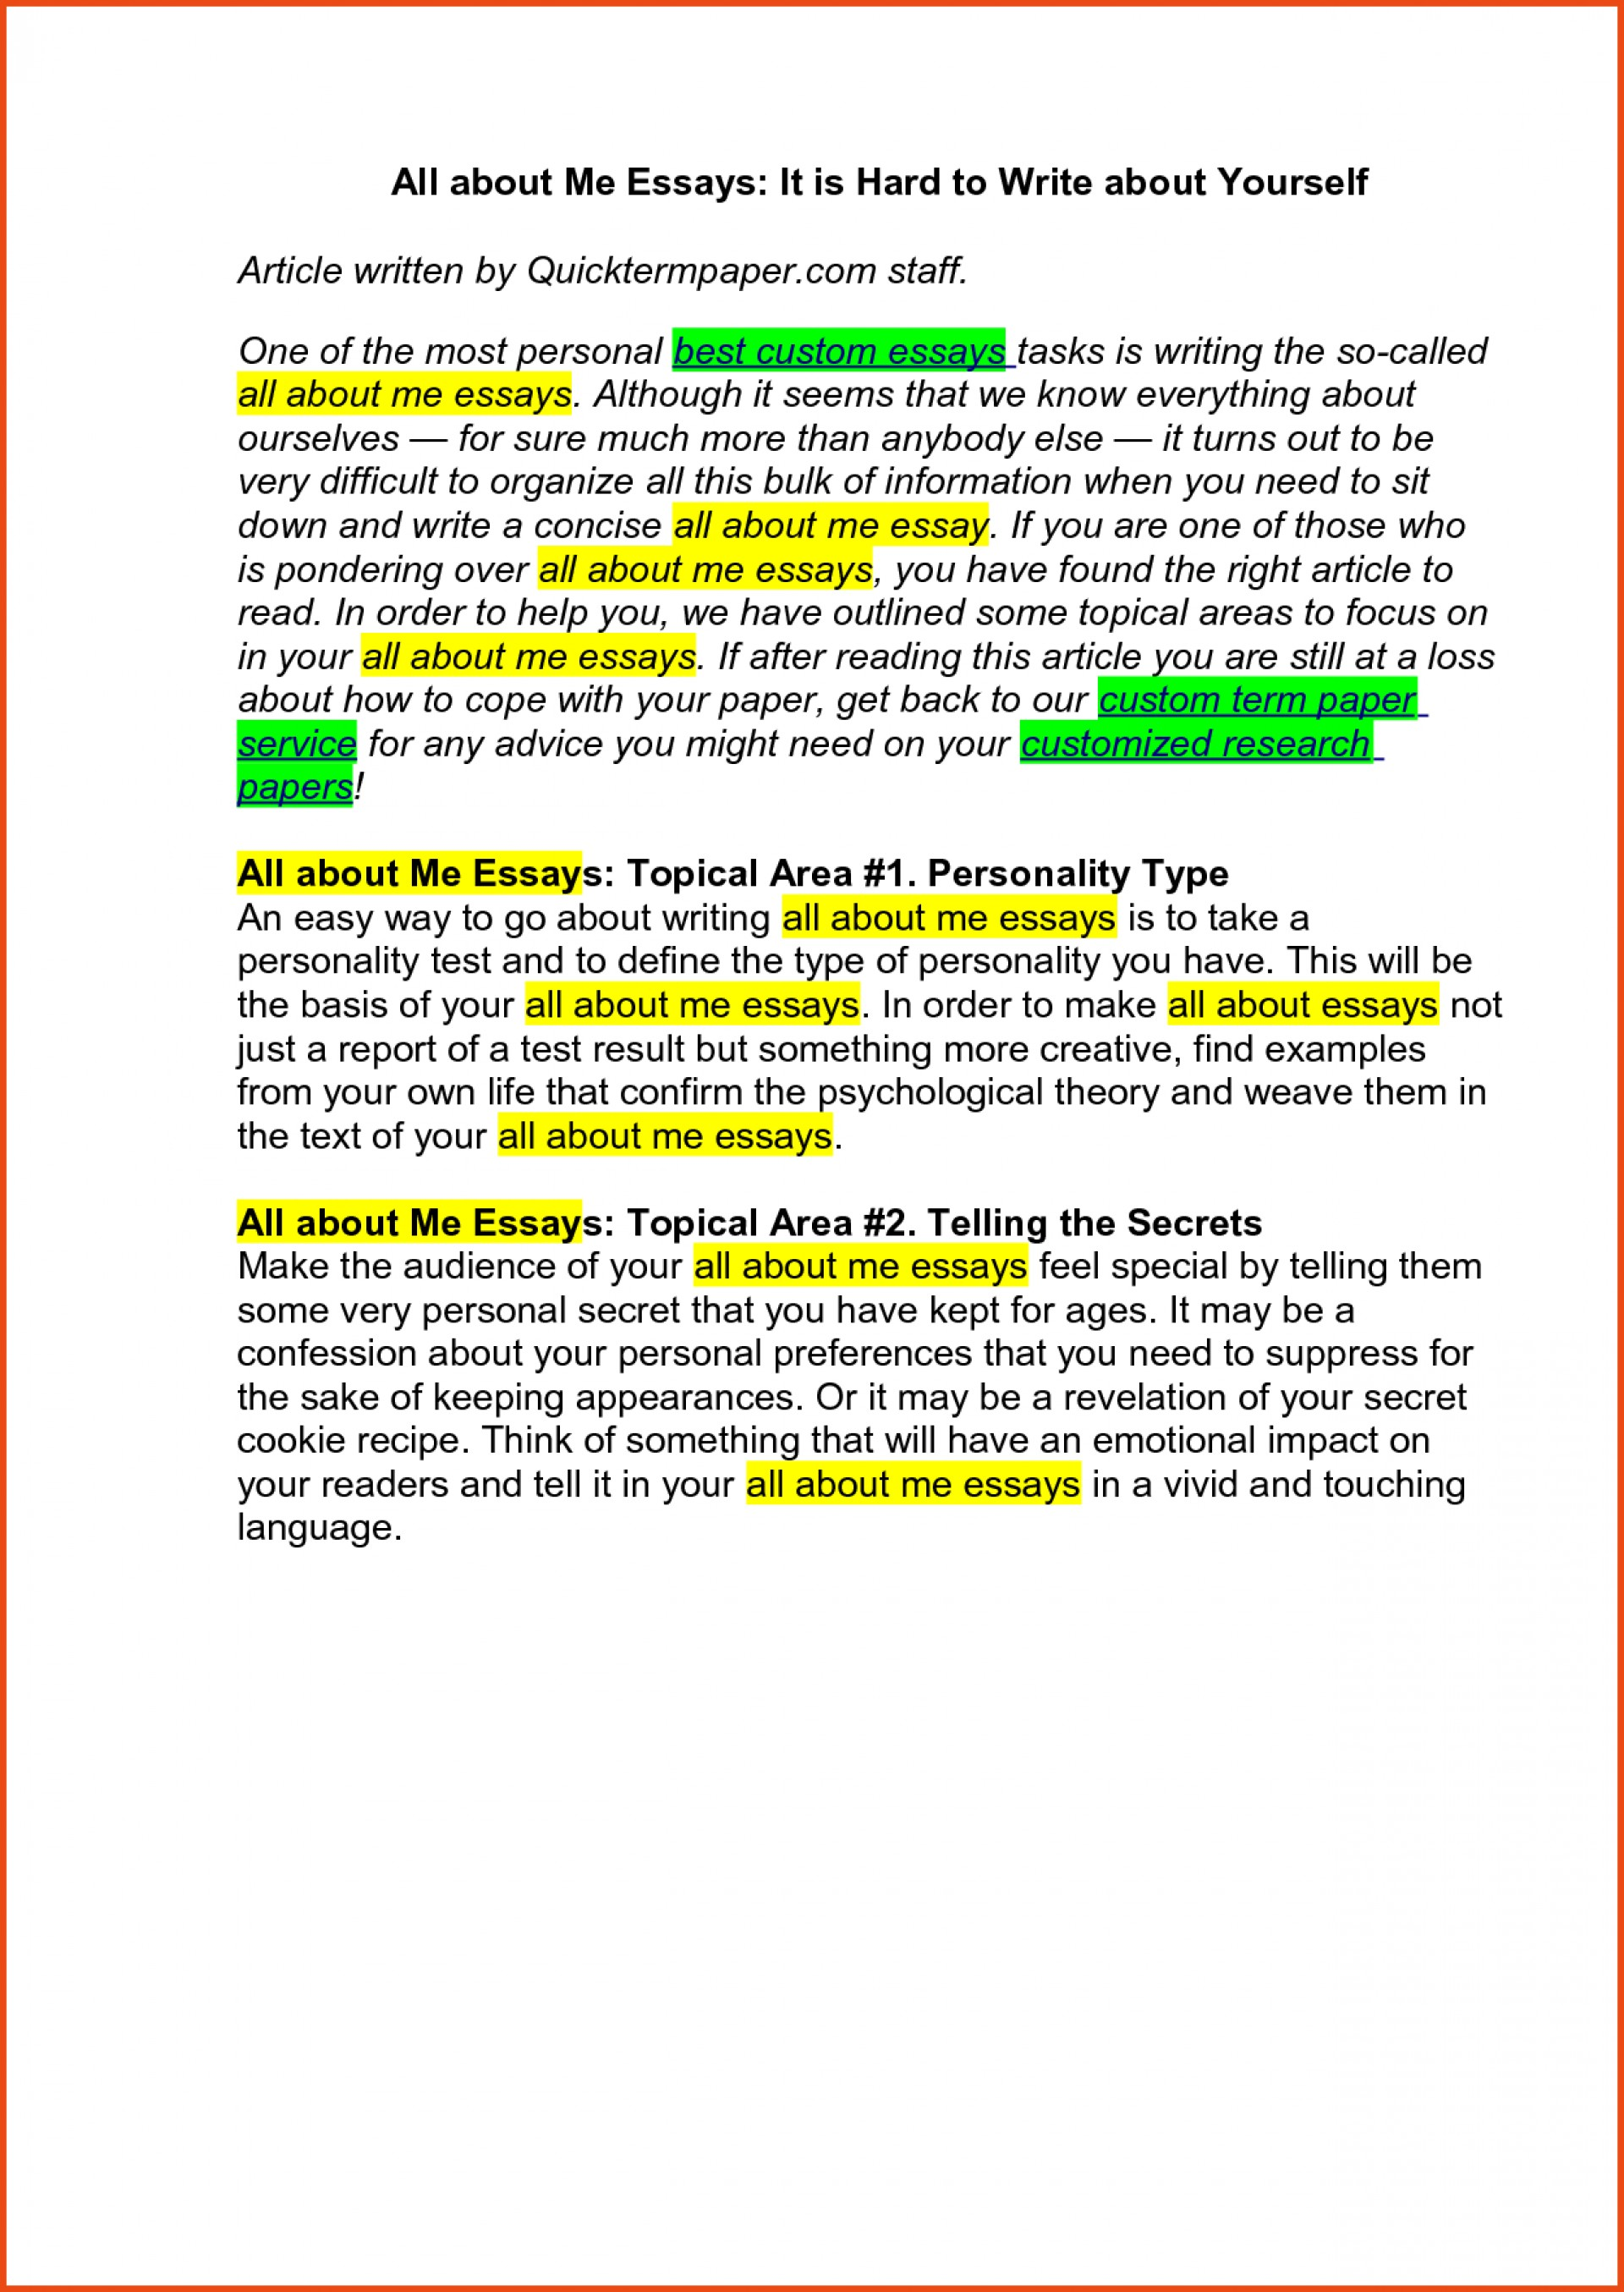 009 Essay Example Sample College Admissions Good Mba Essays School Application About Yourself For Examples Confortable Resume In Admis How To Write Unusual An Myself Pdf Describing 1920